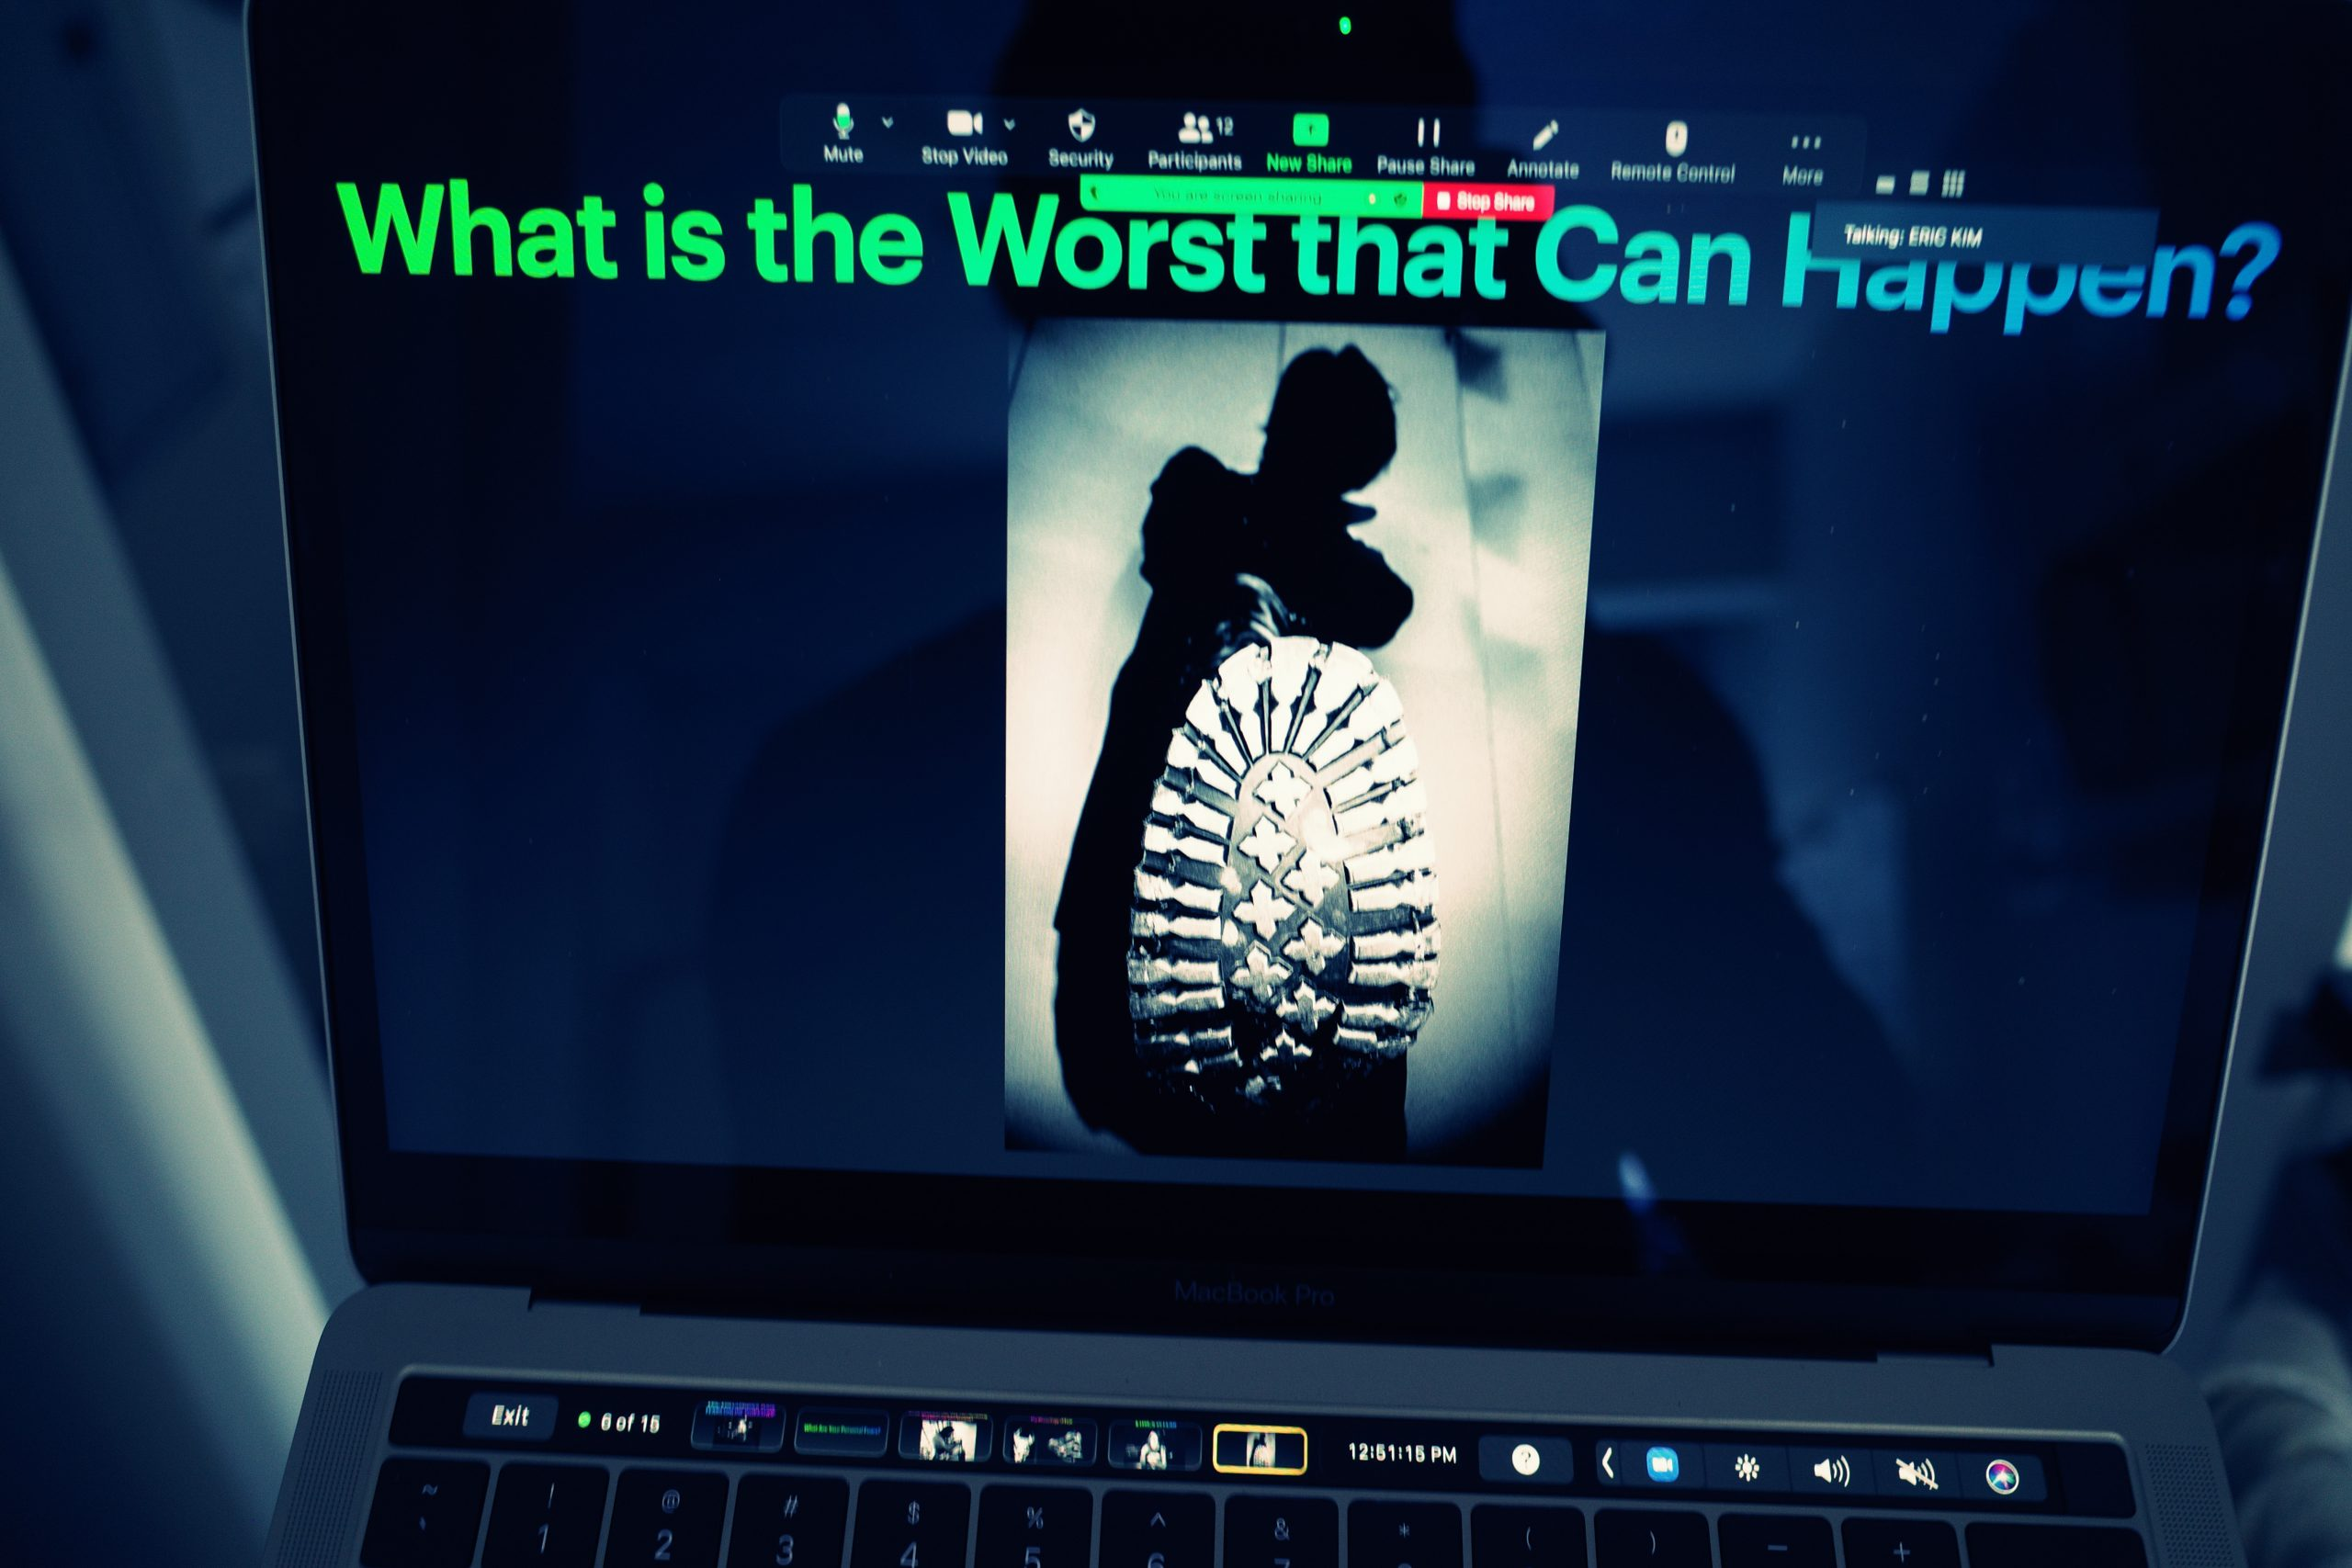 What is the worst that can happen?